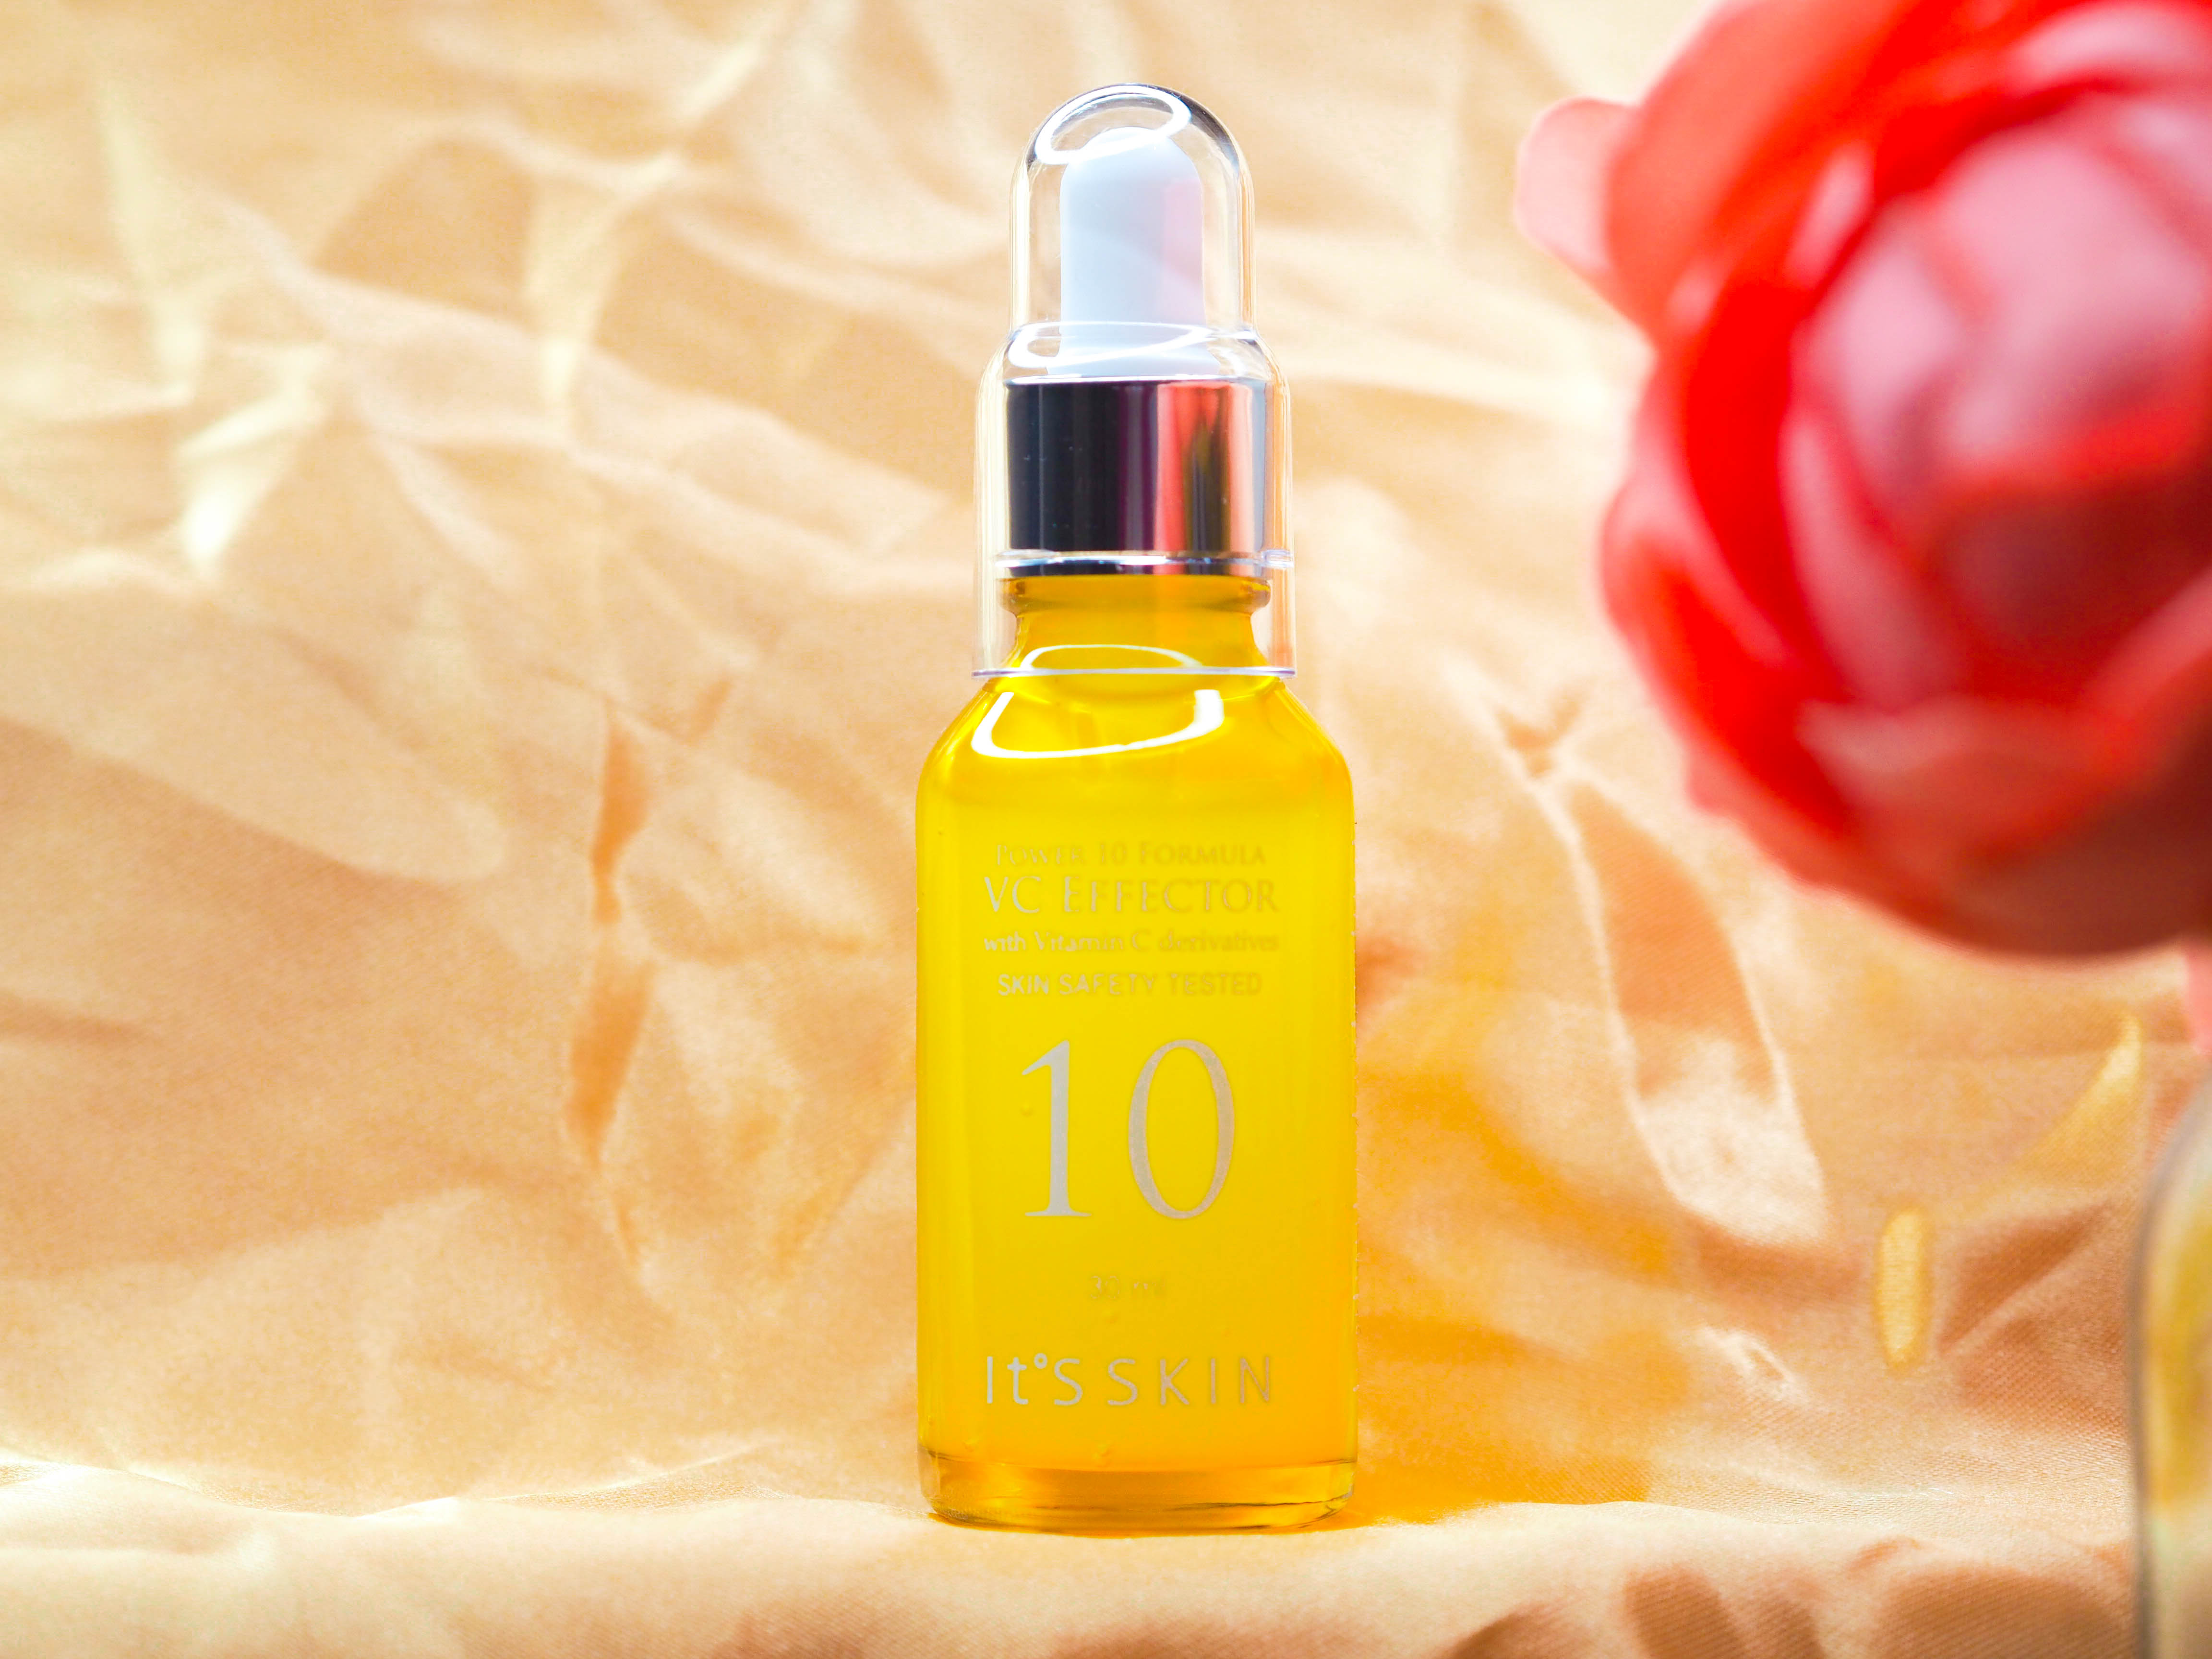 It's Skin VC Serum Review